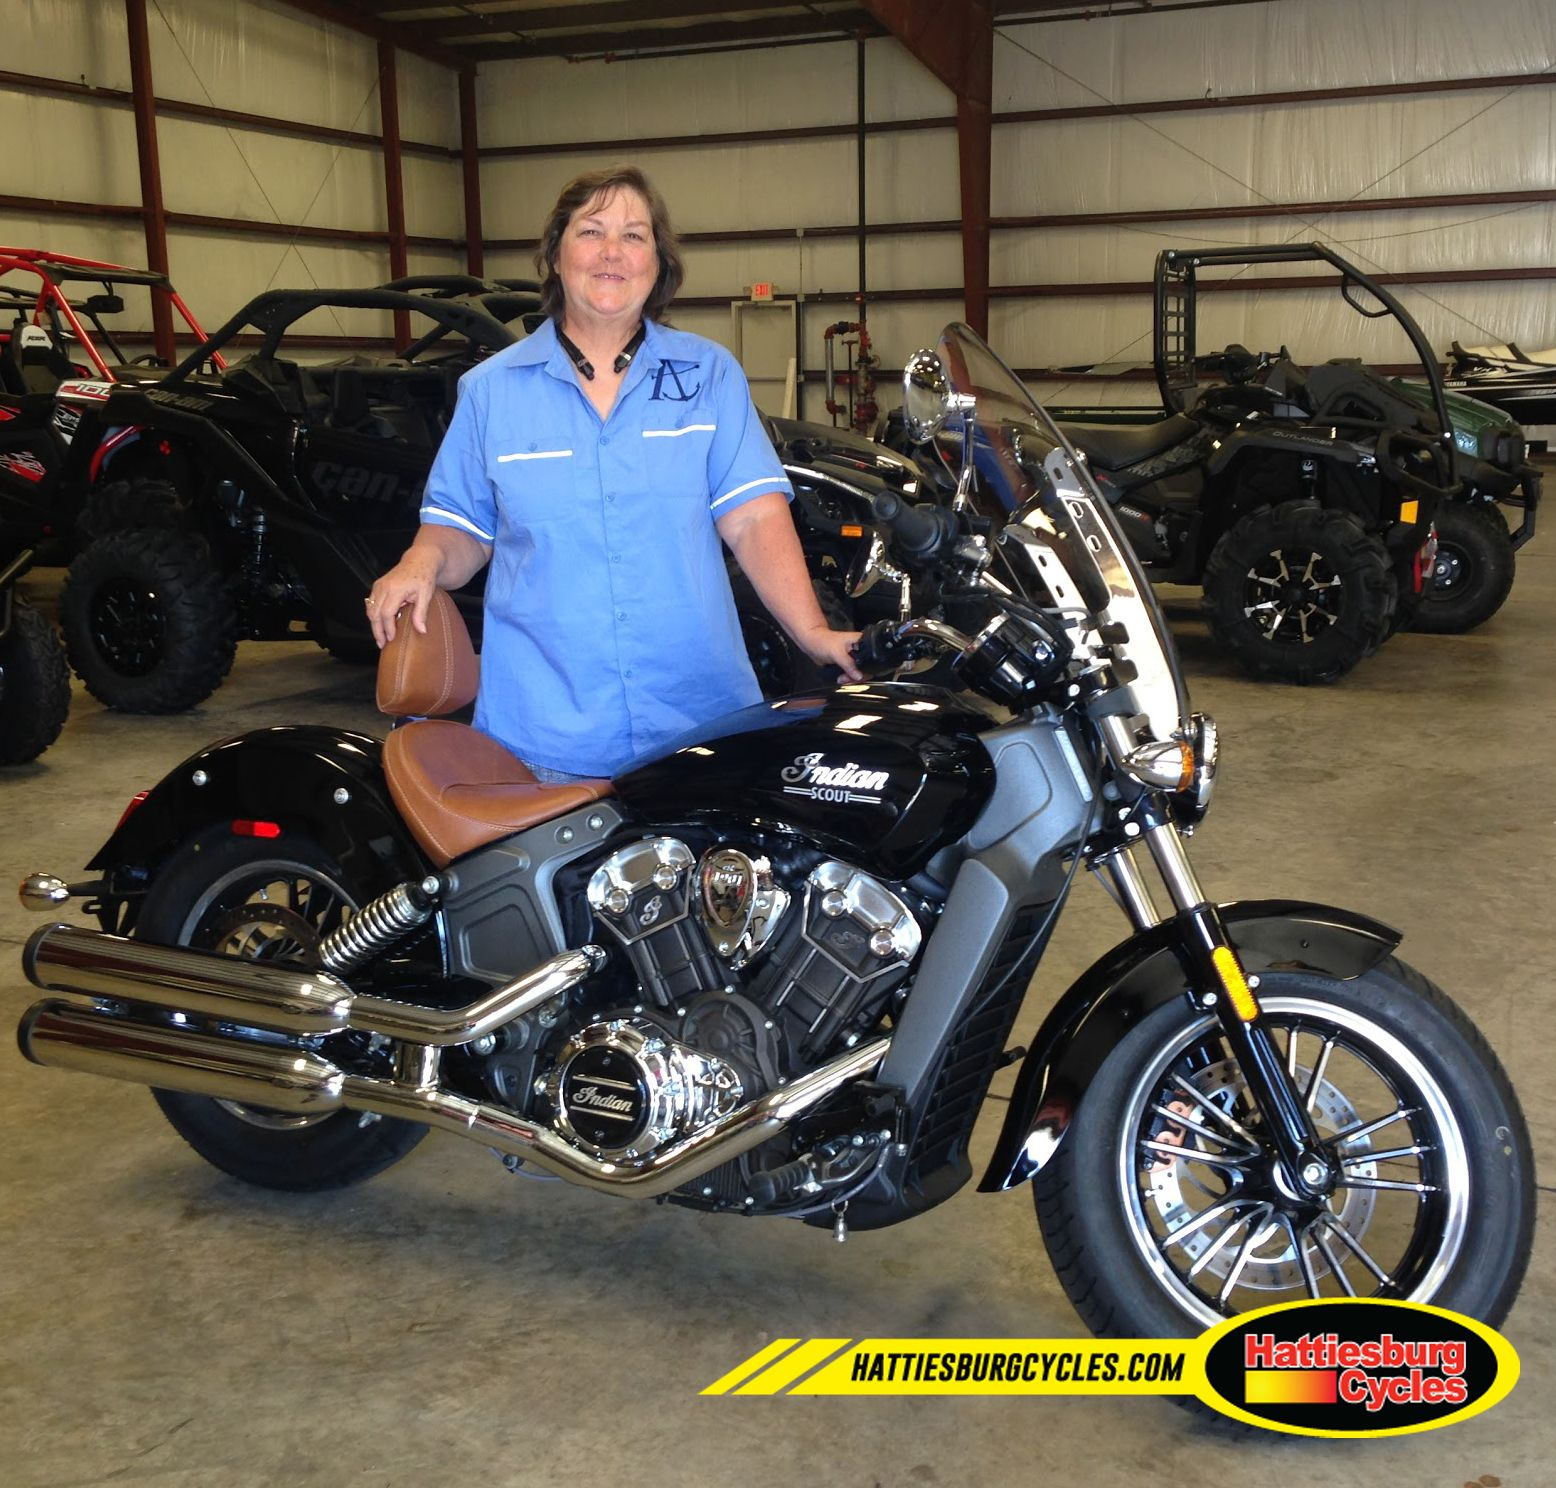 Thanks to Joan Tomb from Vancleave MS for getting a 2016 Indian Scout @HattiesburgCycles